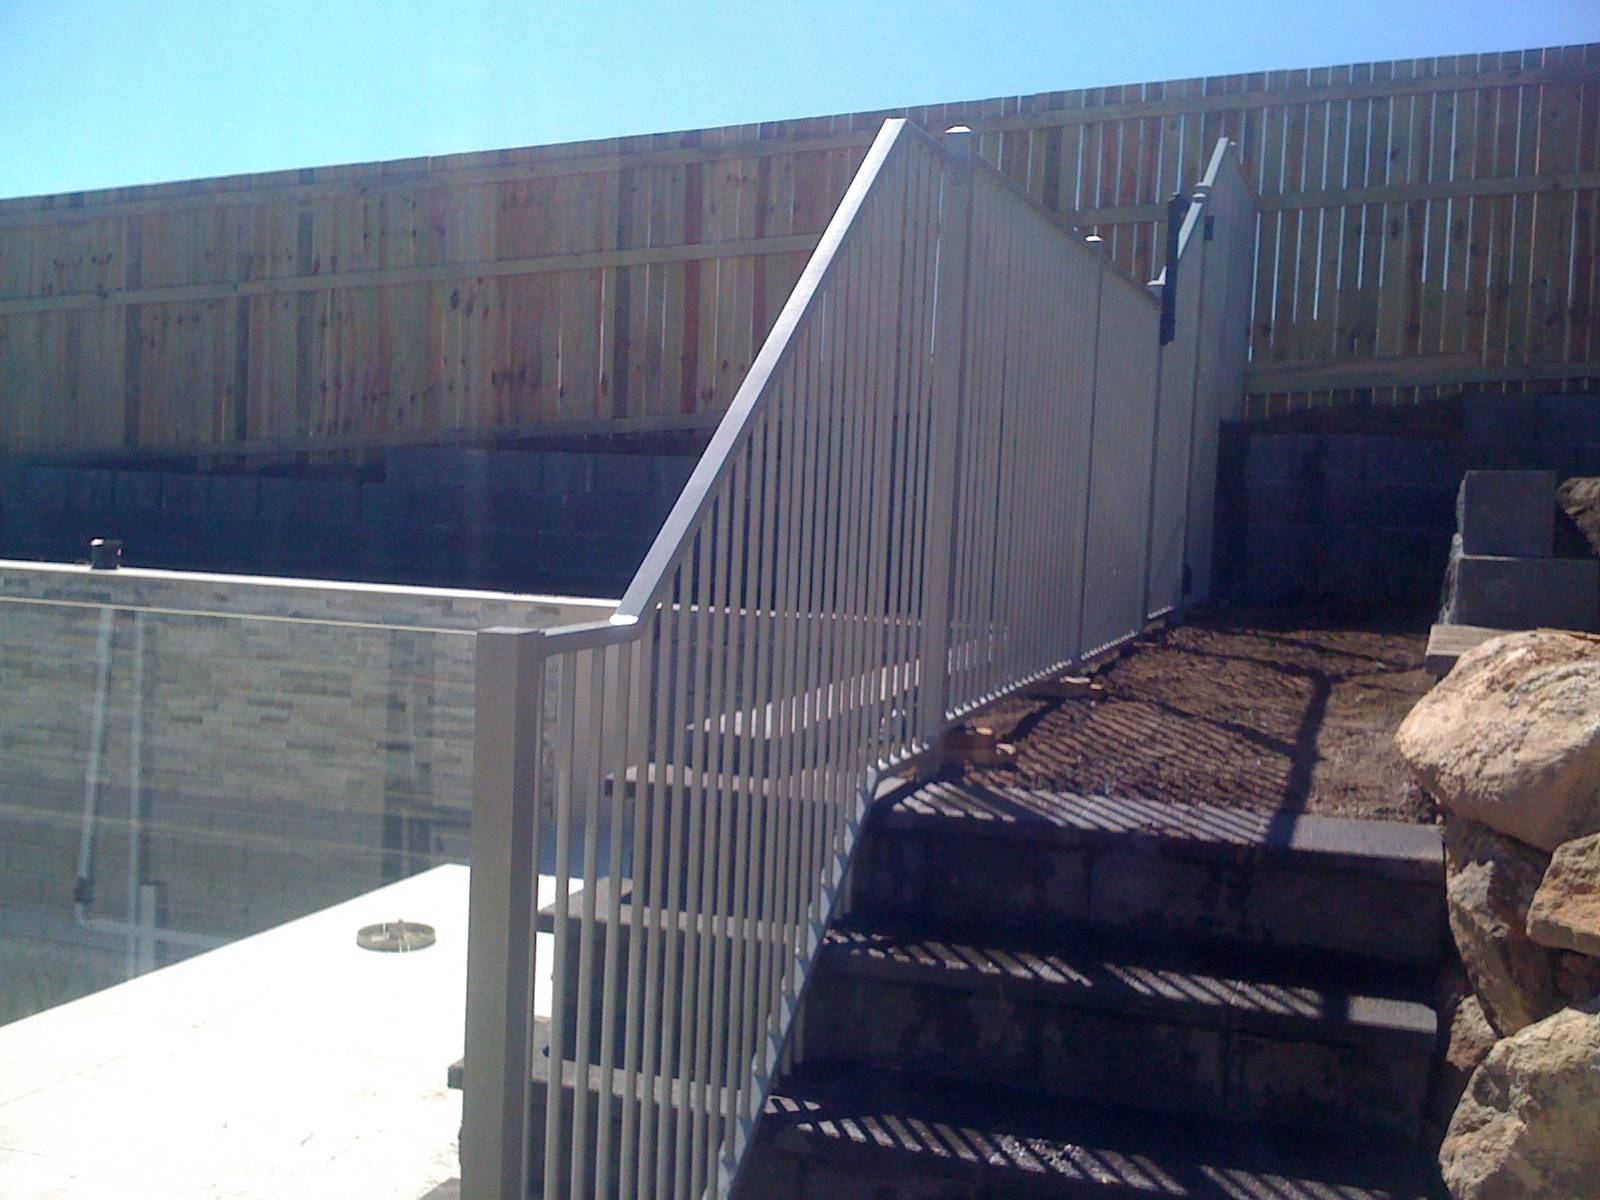 Pool fencing up and over stairs.